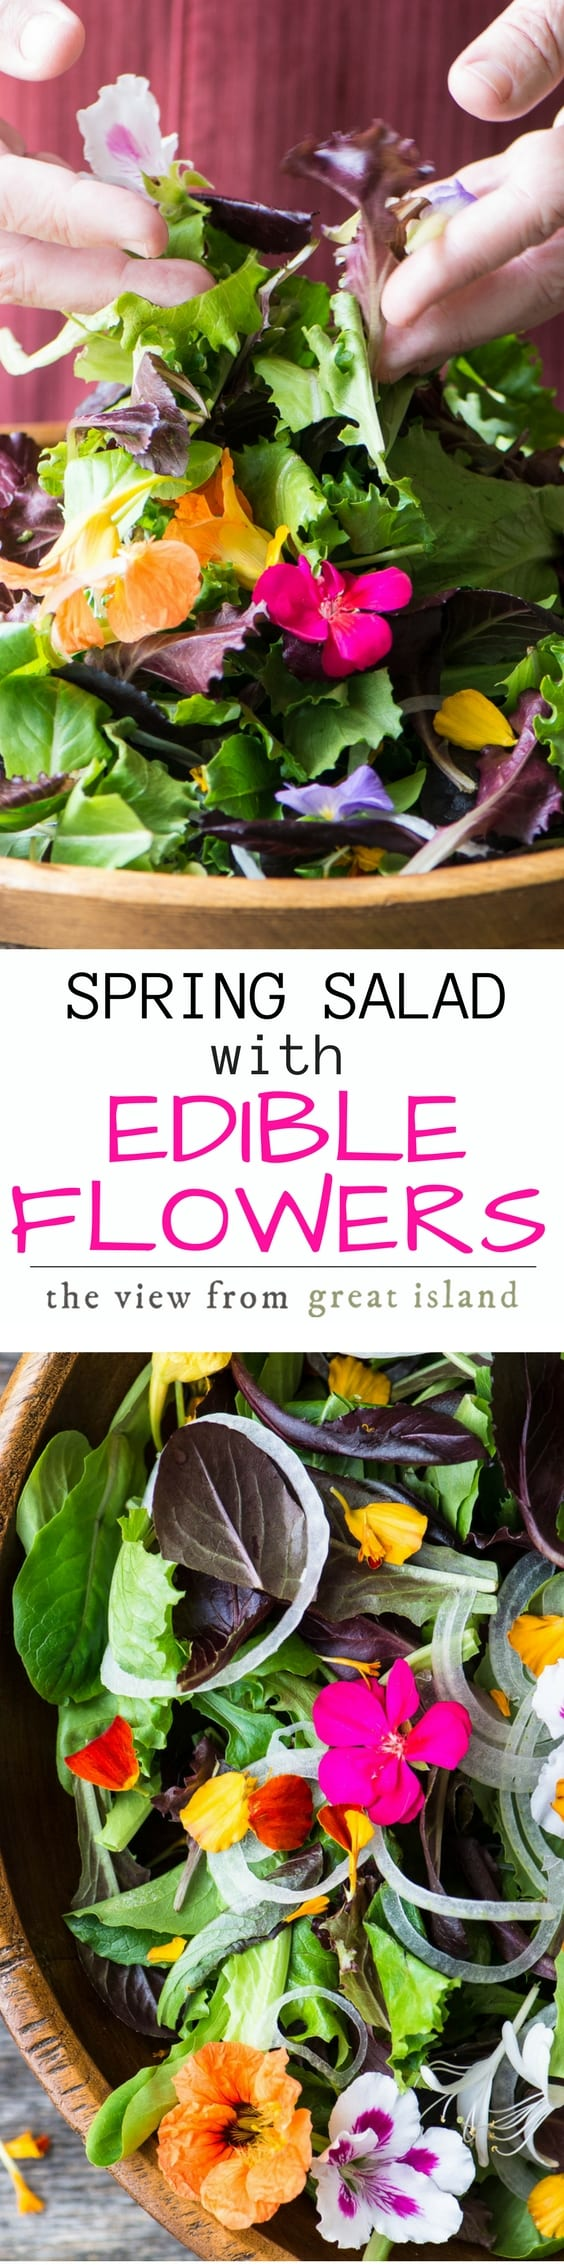 Spring Salad with Edible Flowers ~ this simple side dish is spring in a bowl ~ I'll show you how to identify, source, and use edible flowers to make this celebratory salad for weddings, showers, holidays, or any spring gathering. #salad #edibleflowers #kale #pansies #springsalad #easter #mothersday #passover #sidedish #nasturium, #healthy #glutenfree #paleo #whole30 #weightwatchers #vegan #vegetarian